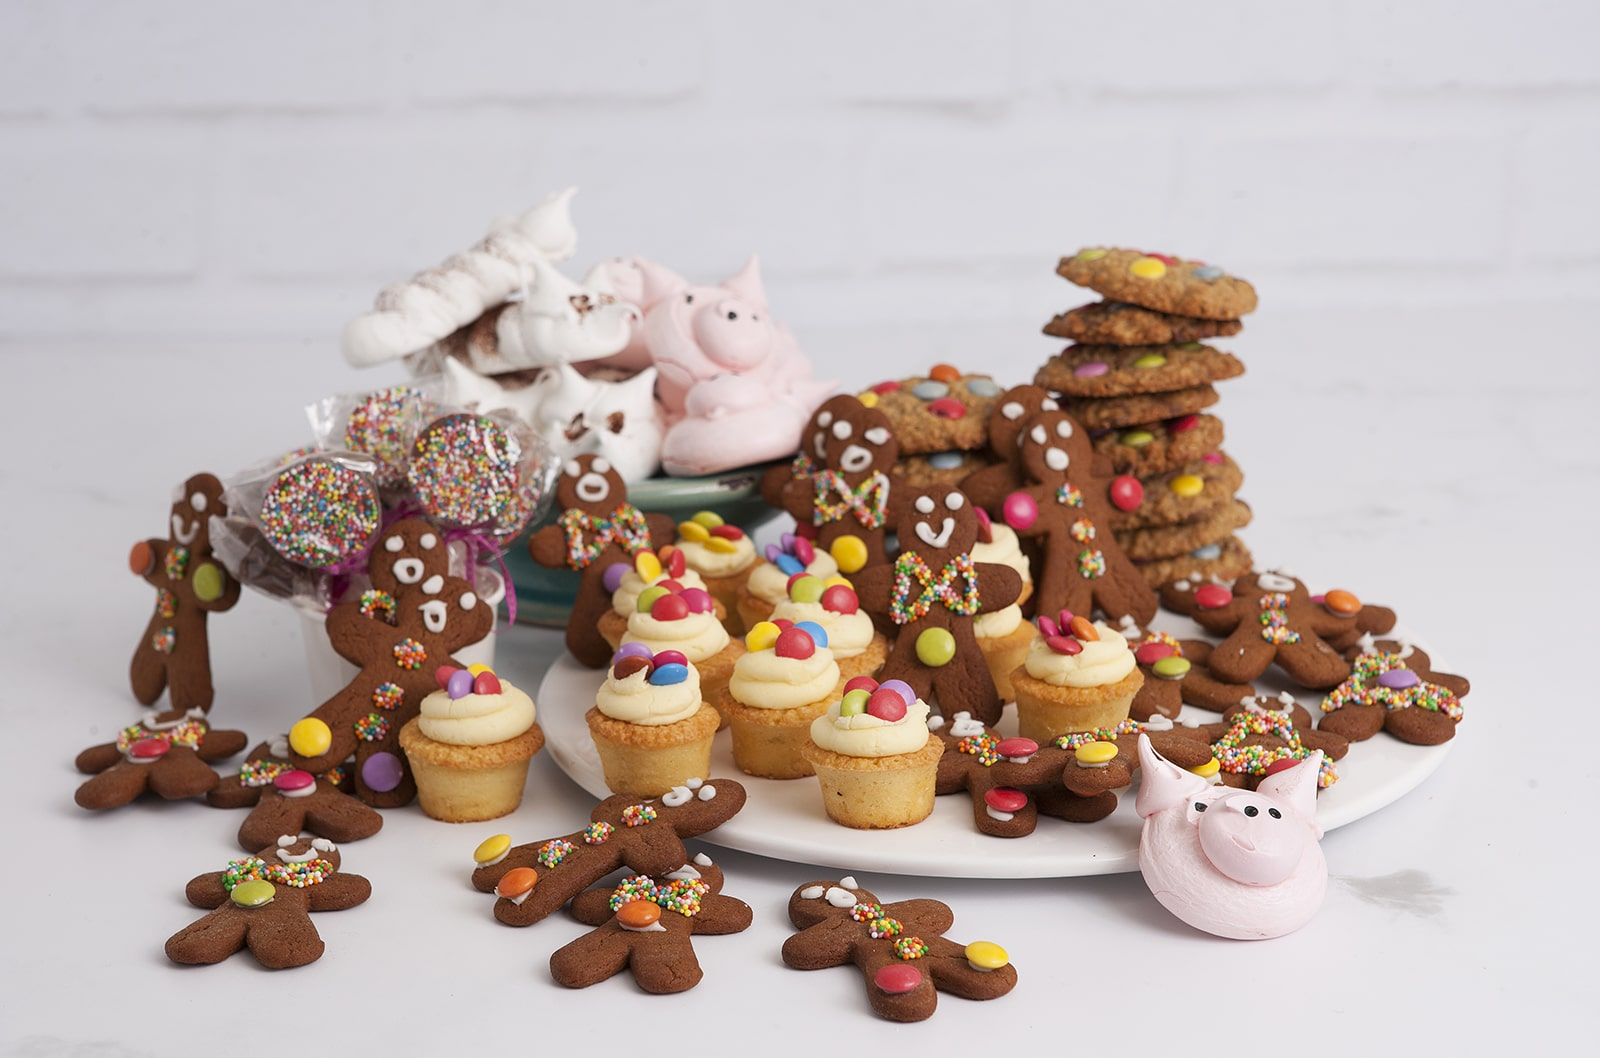 Delightful range of kids cakes, cookies, cupcakes and gingerbread men at Mrs Jones The Baker.Mrs Jones is a bakery northern beaches that creates a magnificent range of speciality cakes.